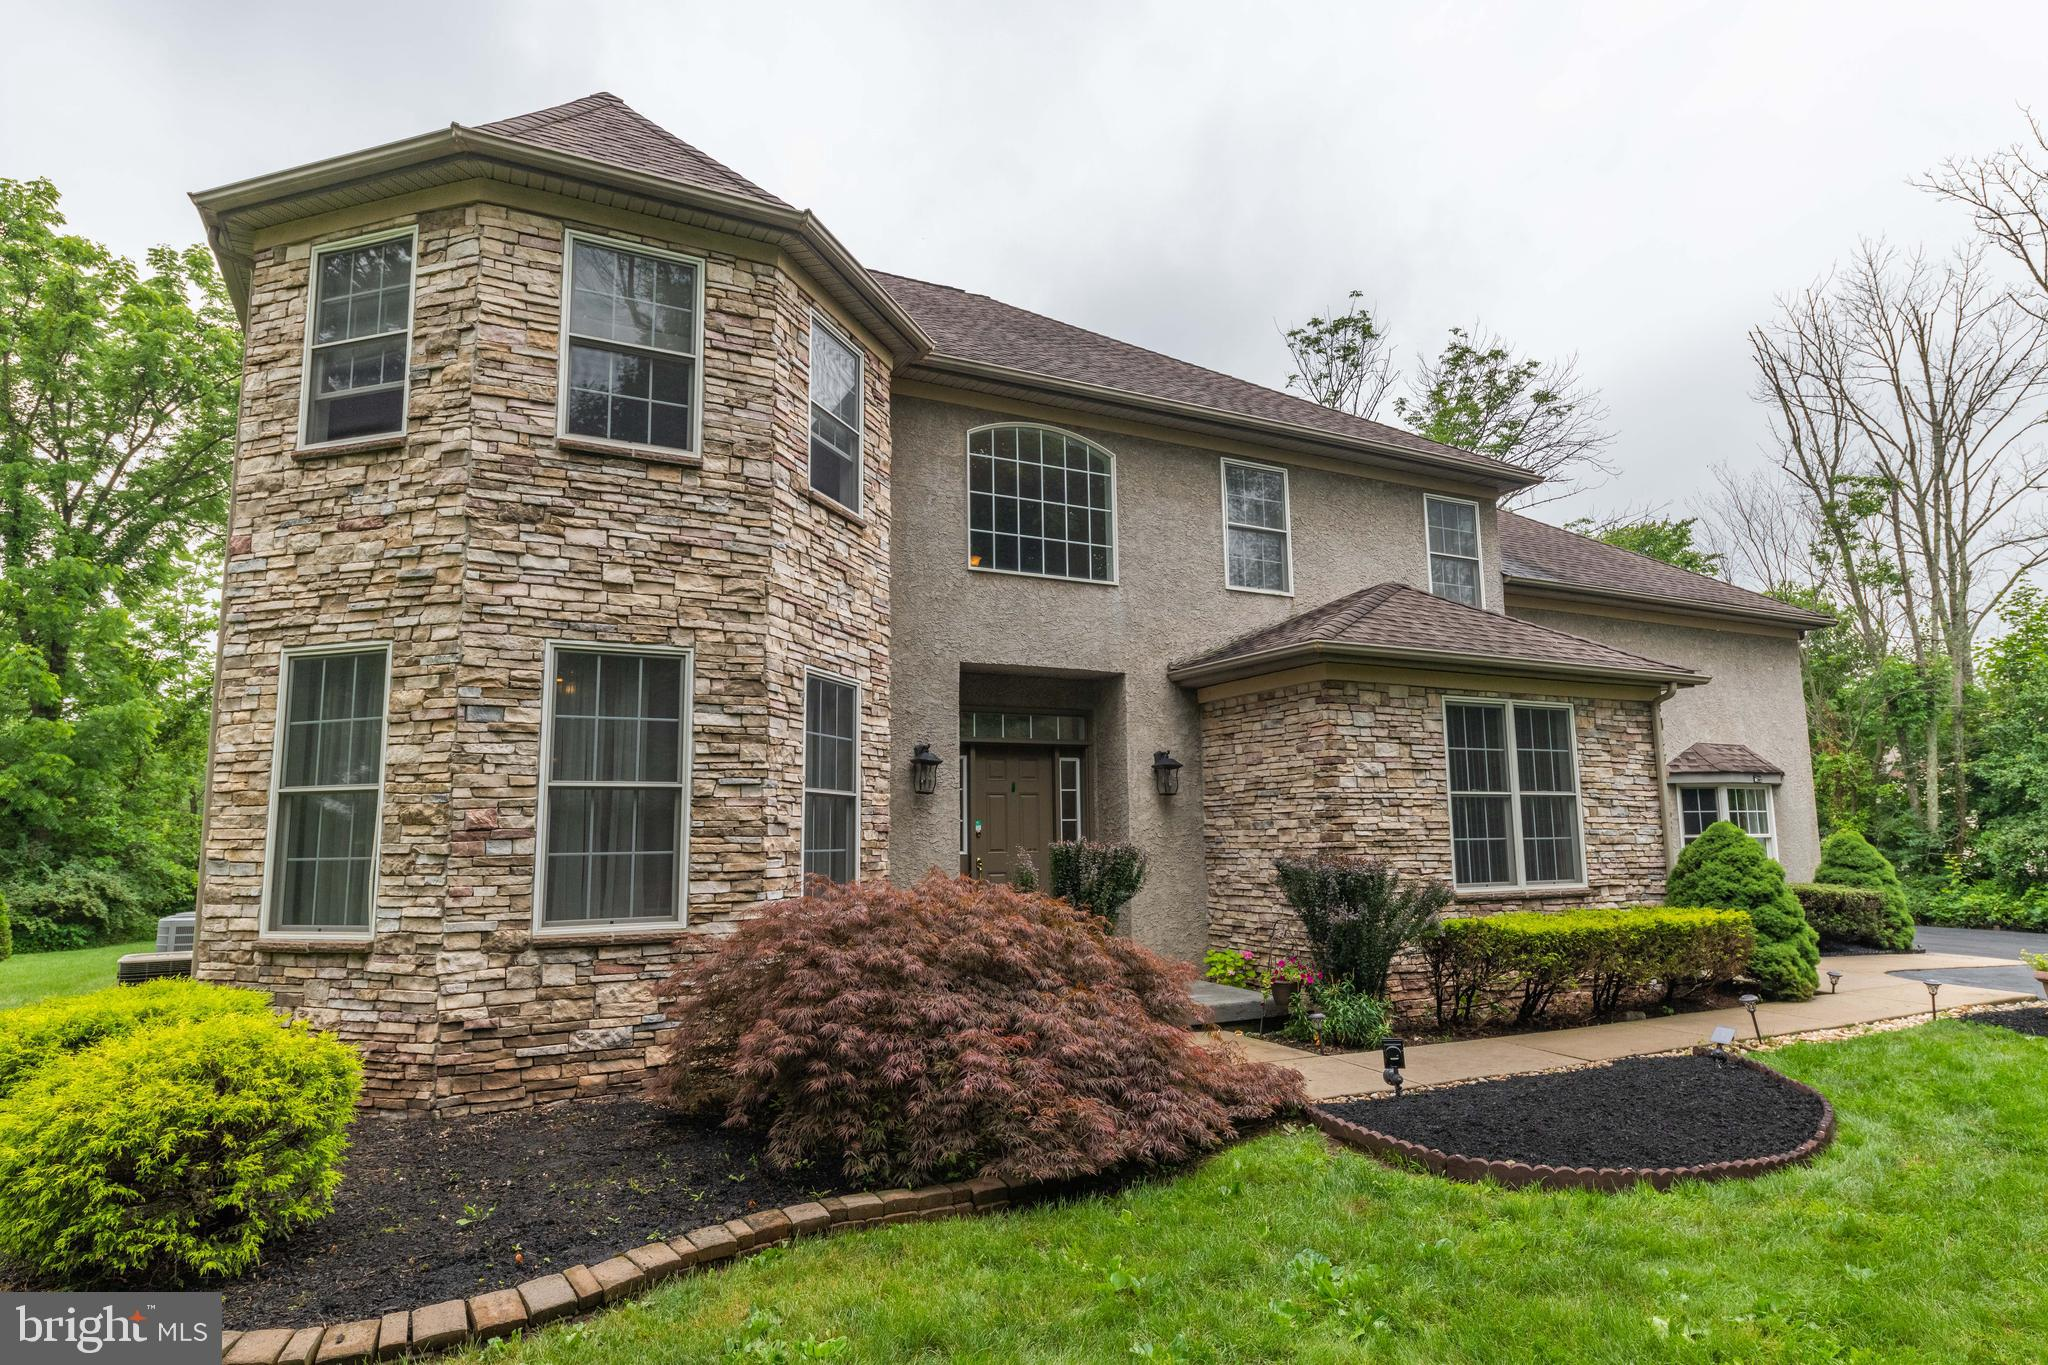 1484 WELSH ROAD, LANSDALE, PA 19446